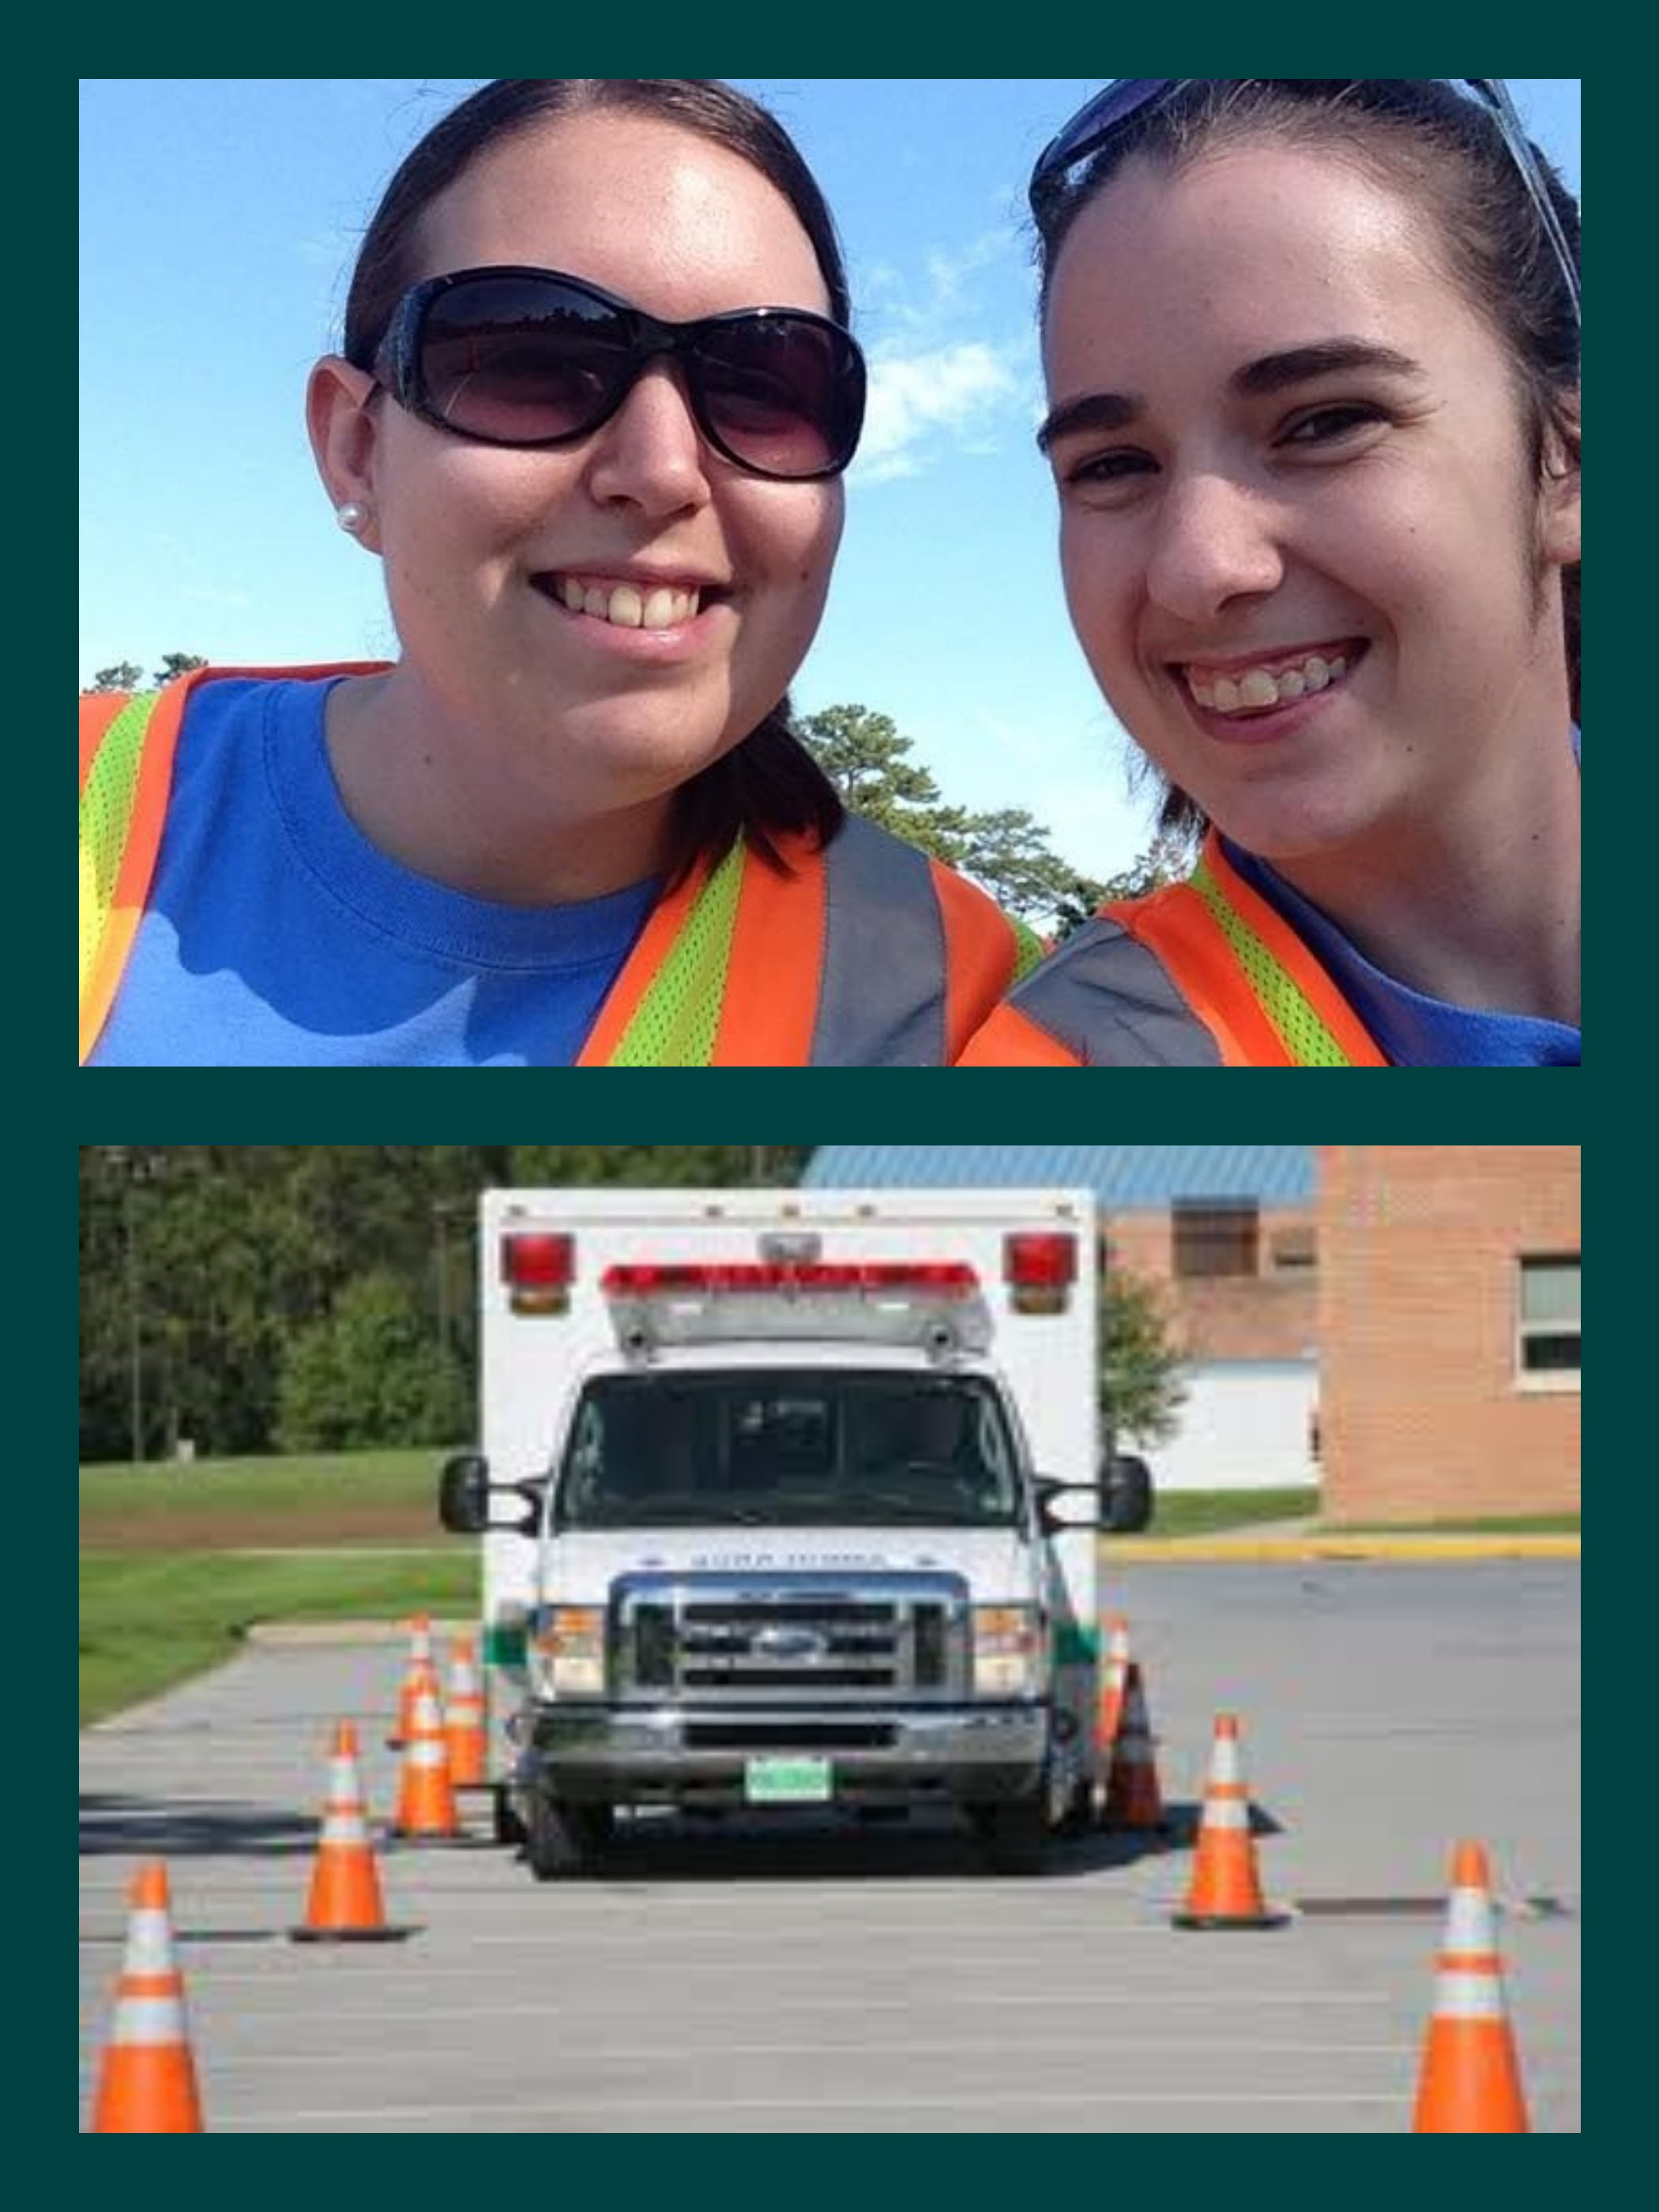 kaylan and shelby just completed their emergency vehicle operators course  way to go